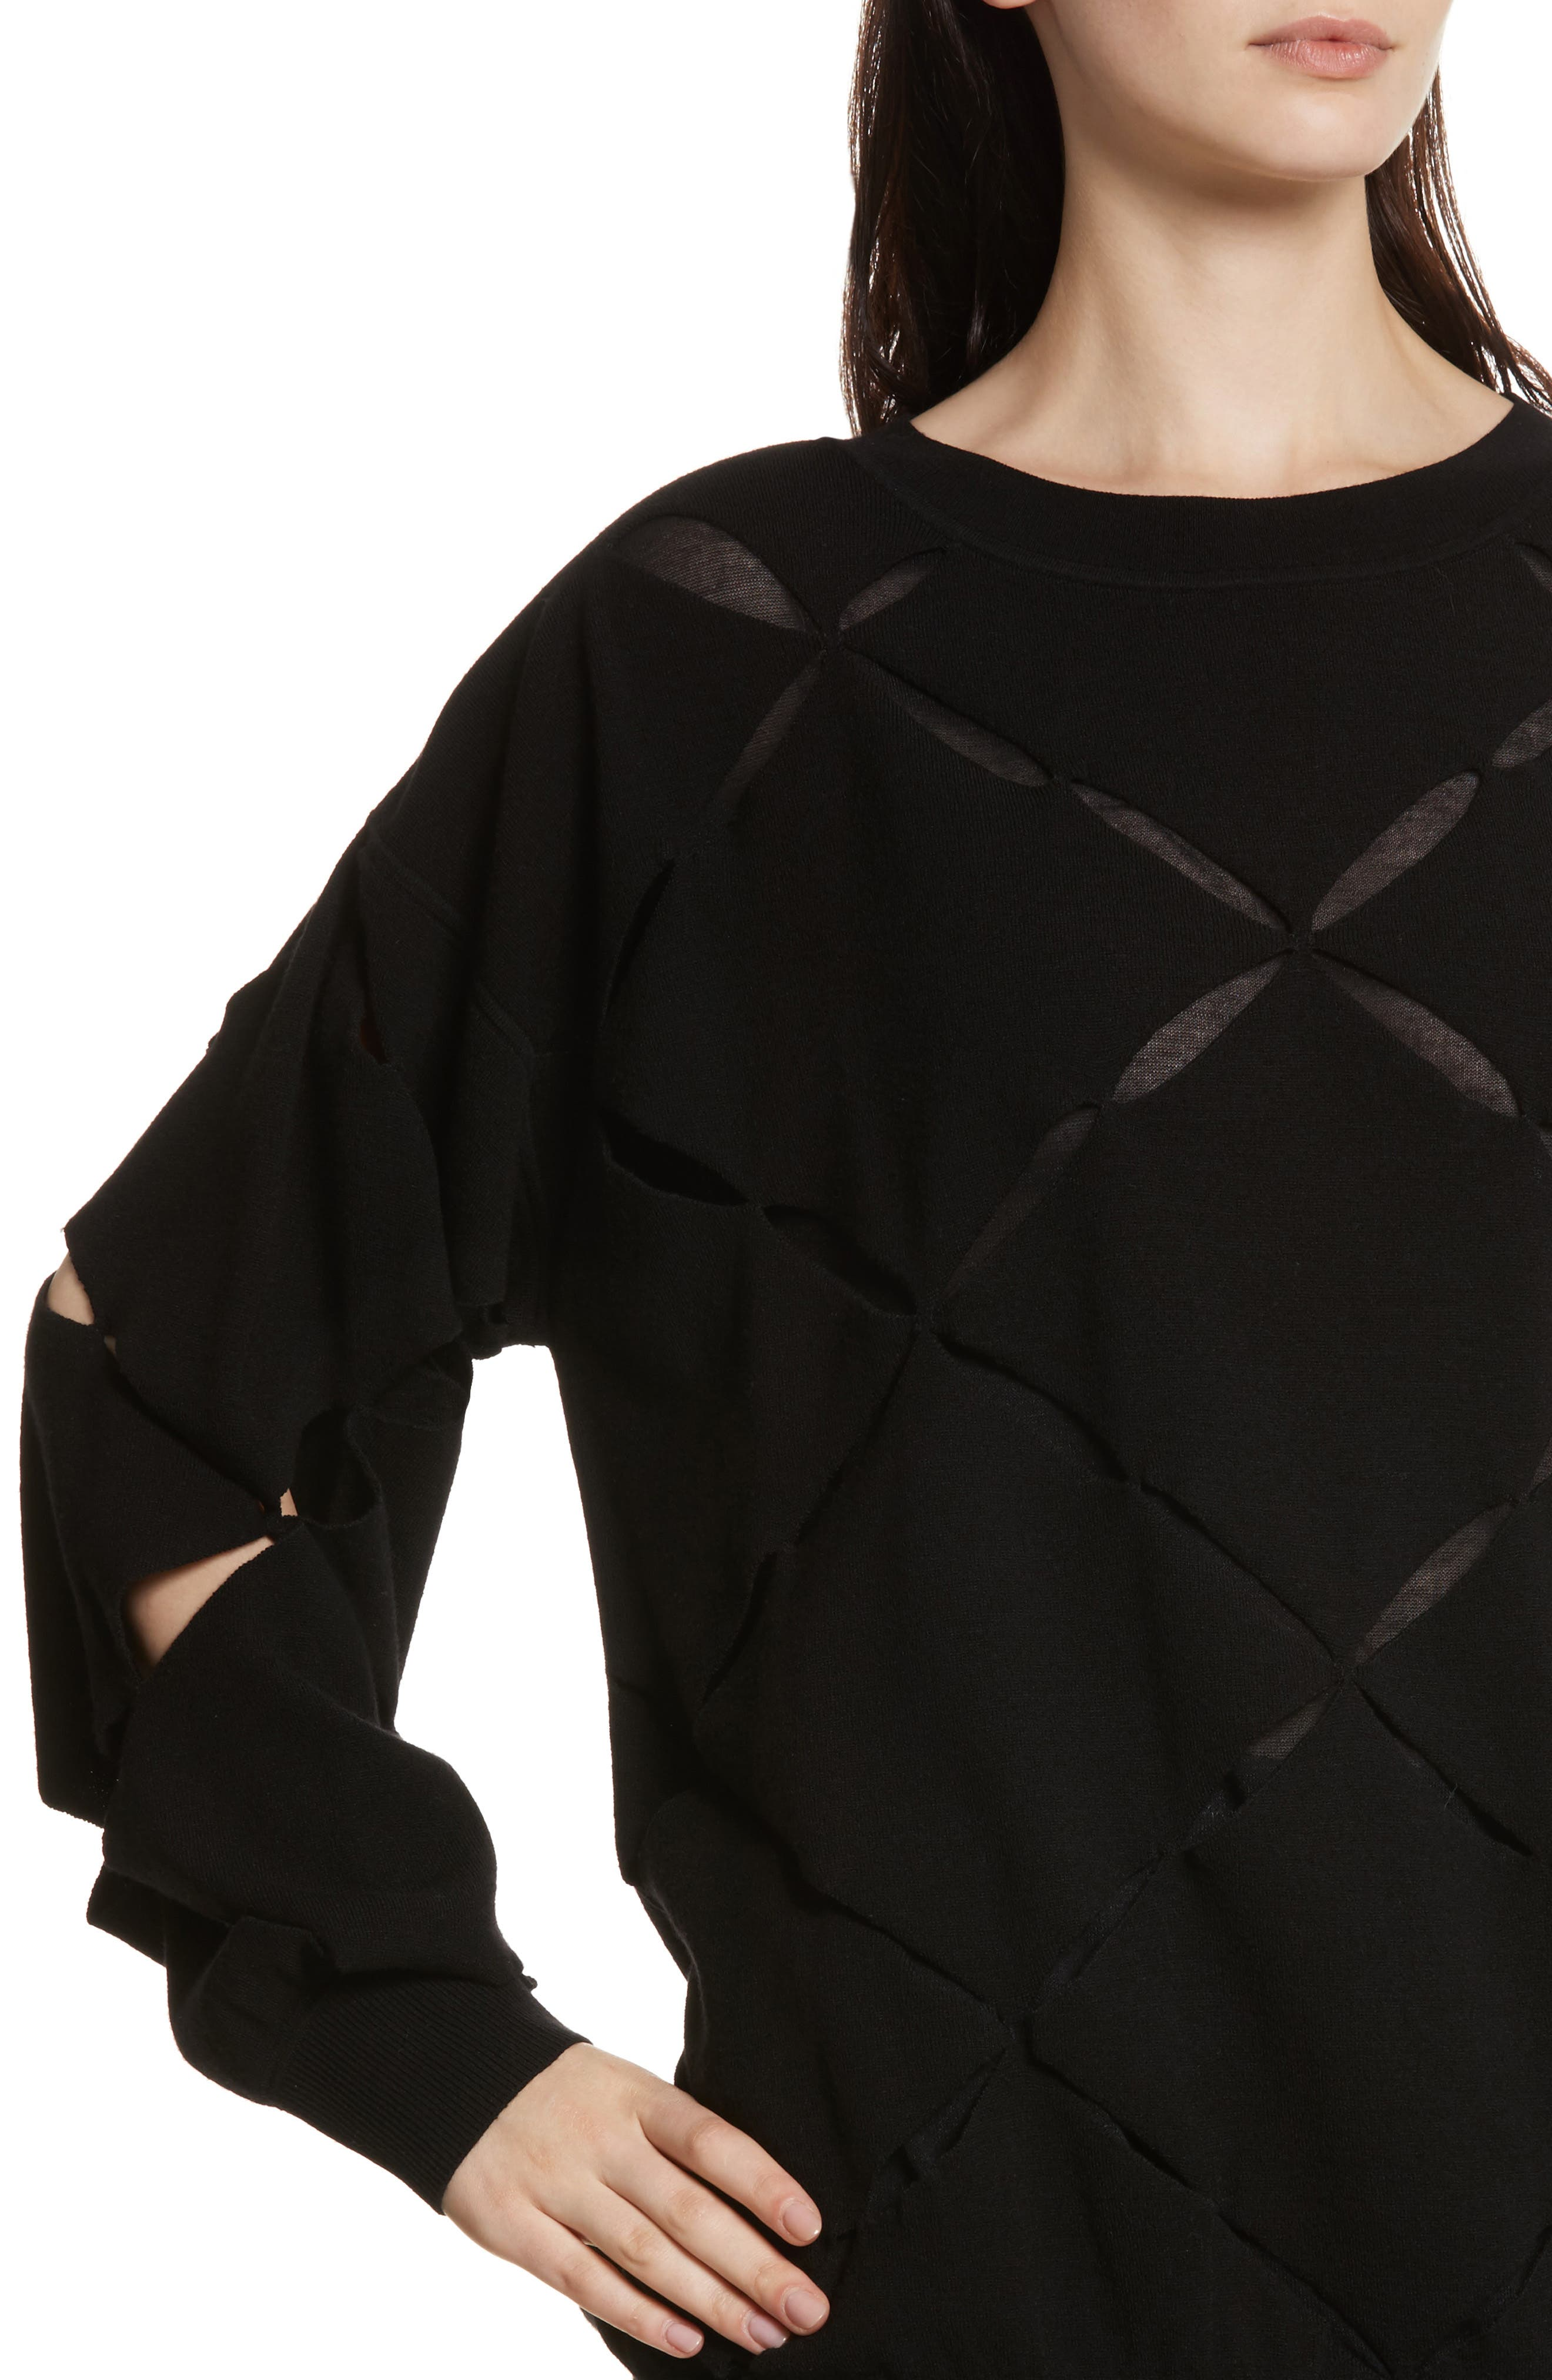 Roz Cutout Sweater,                             Alternate thumbnail 4, color,                             001